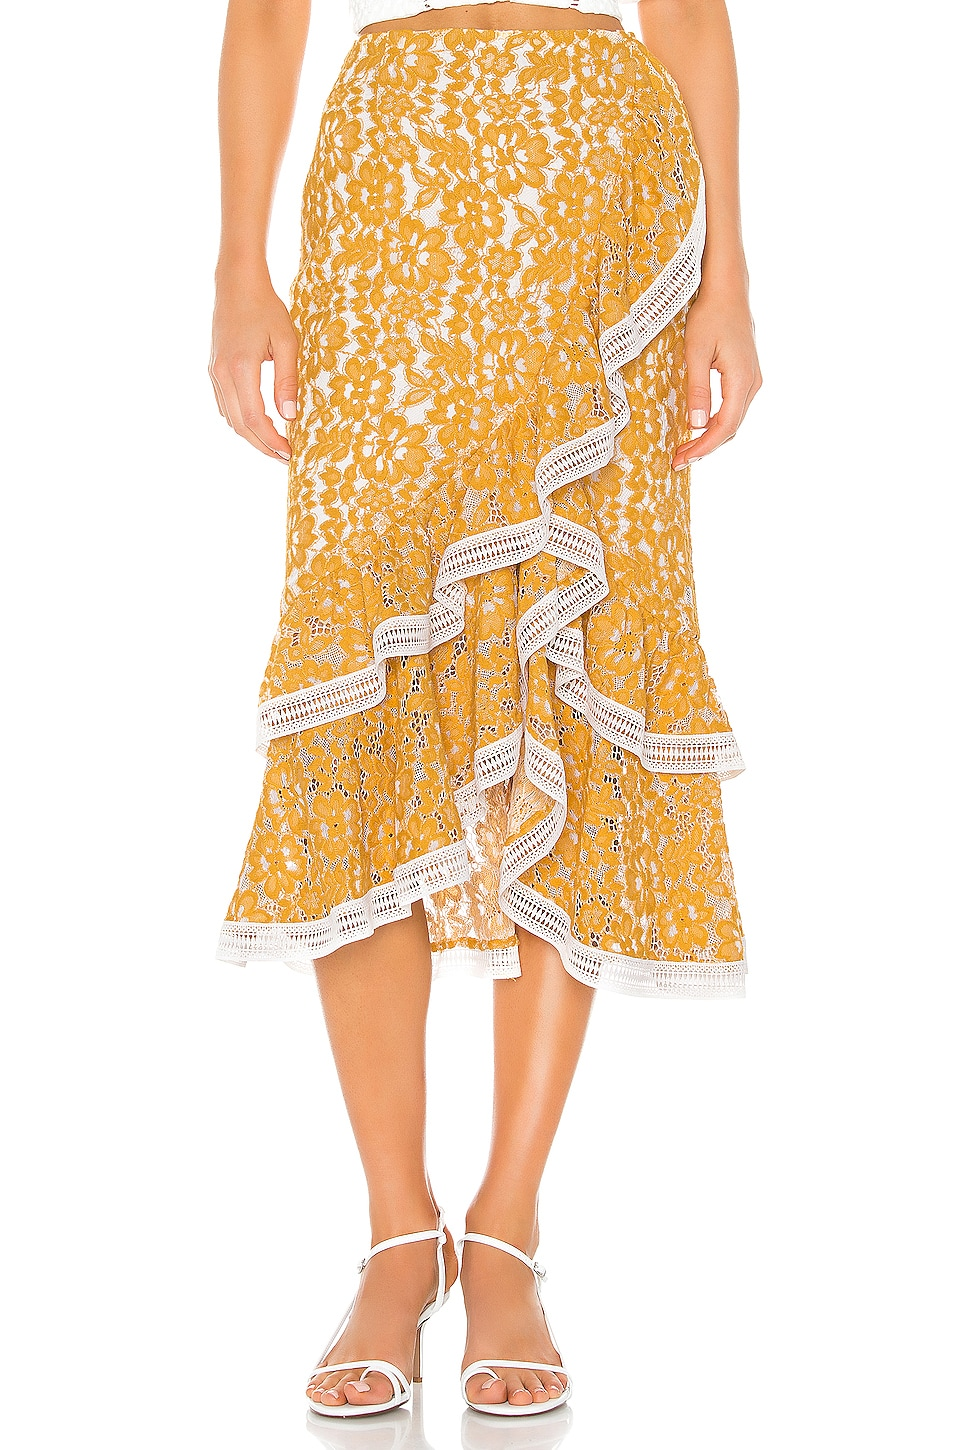 X by NBD Bazzi Midi Skirt in Yellow & Ivory